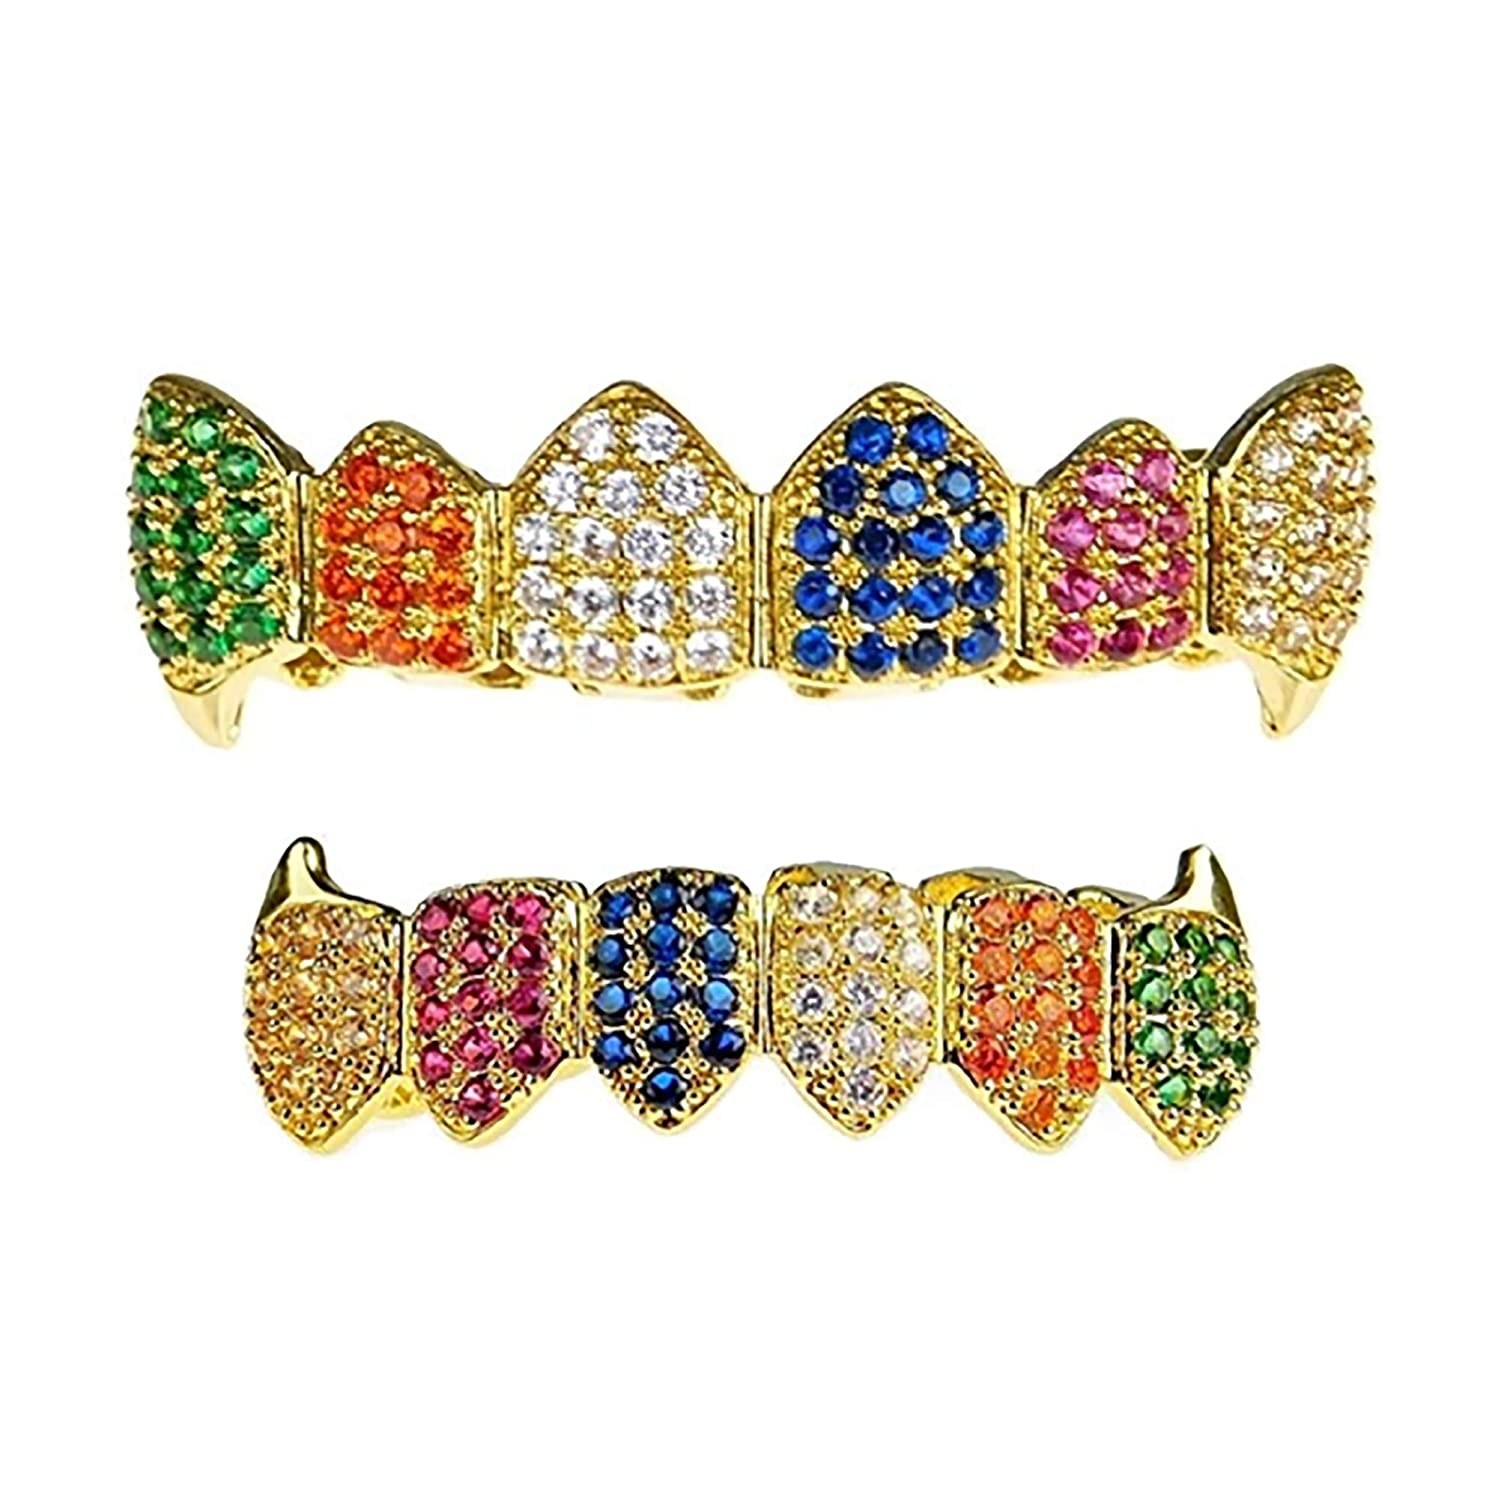 Shop-iGold 18K Gold Plated CZ Cluster Custom Slugs Top Bottom Rainbow Multi Color Grillz Fangs Mouth Teeth Grills Set - Grillz, Teeth Cap, Iced Out Grillz Iced Out Grillz (Bottom)